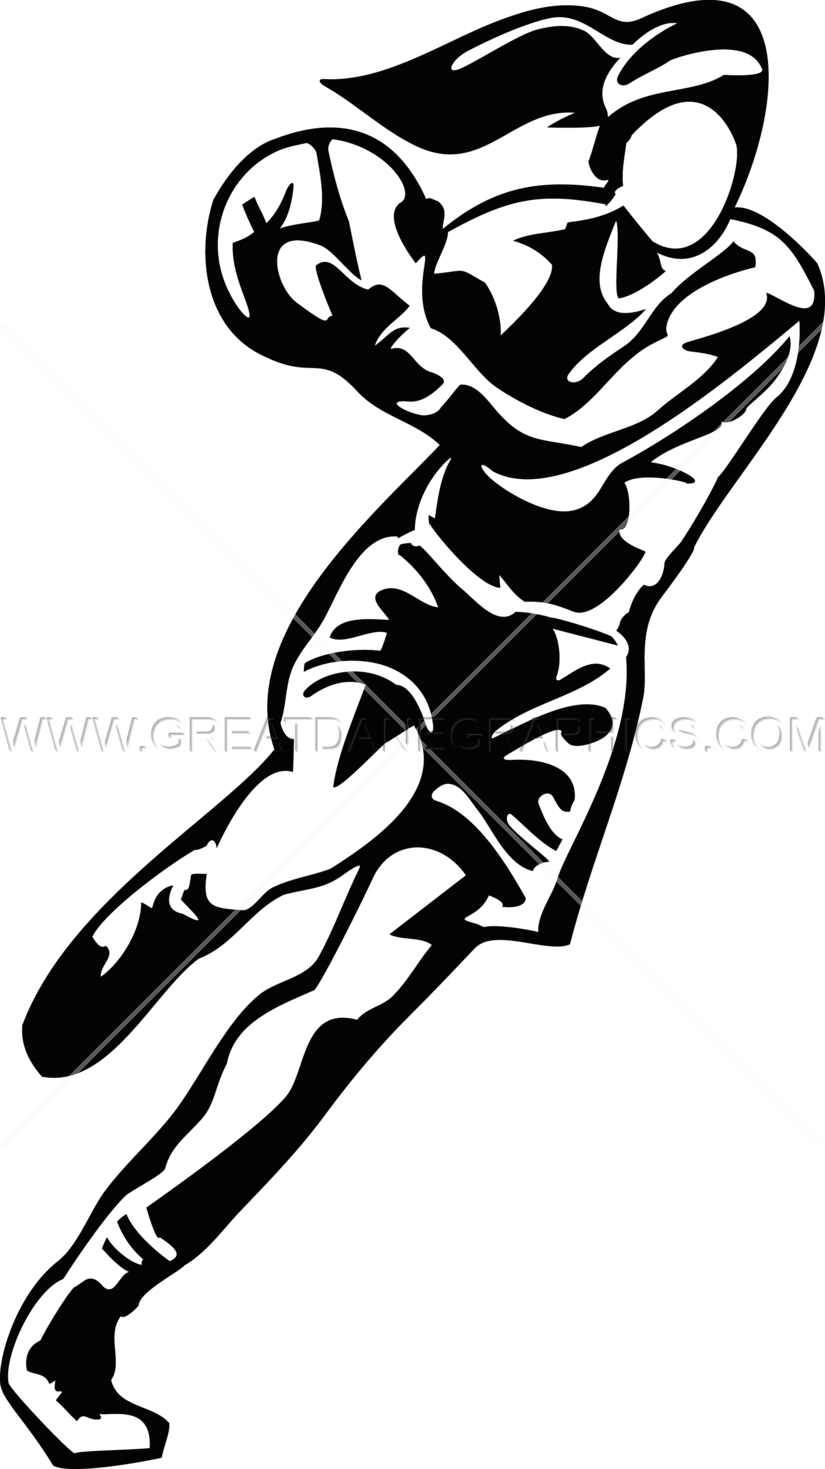 Basketball player black and white clipart picture freeuse Female Basketball Player | Production Ready Artwork for T-Shirt Printing picture freeuse